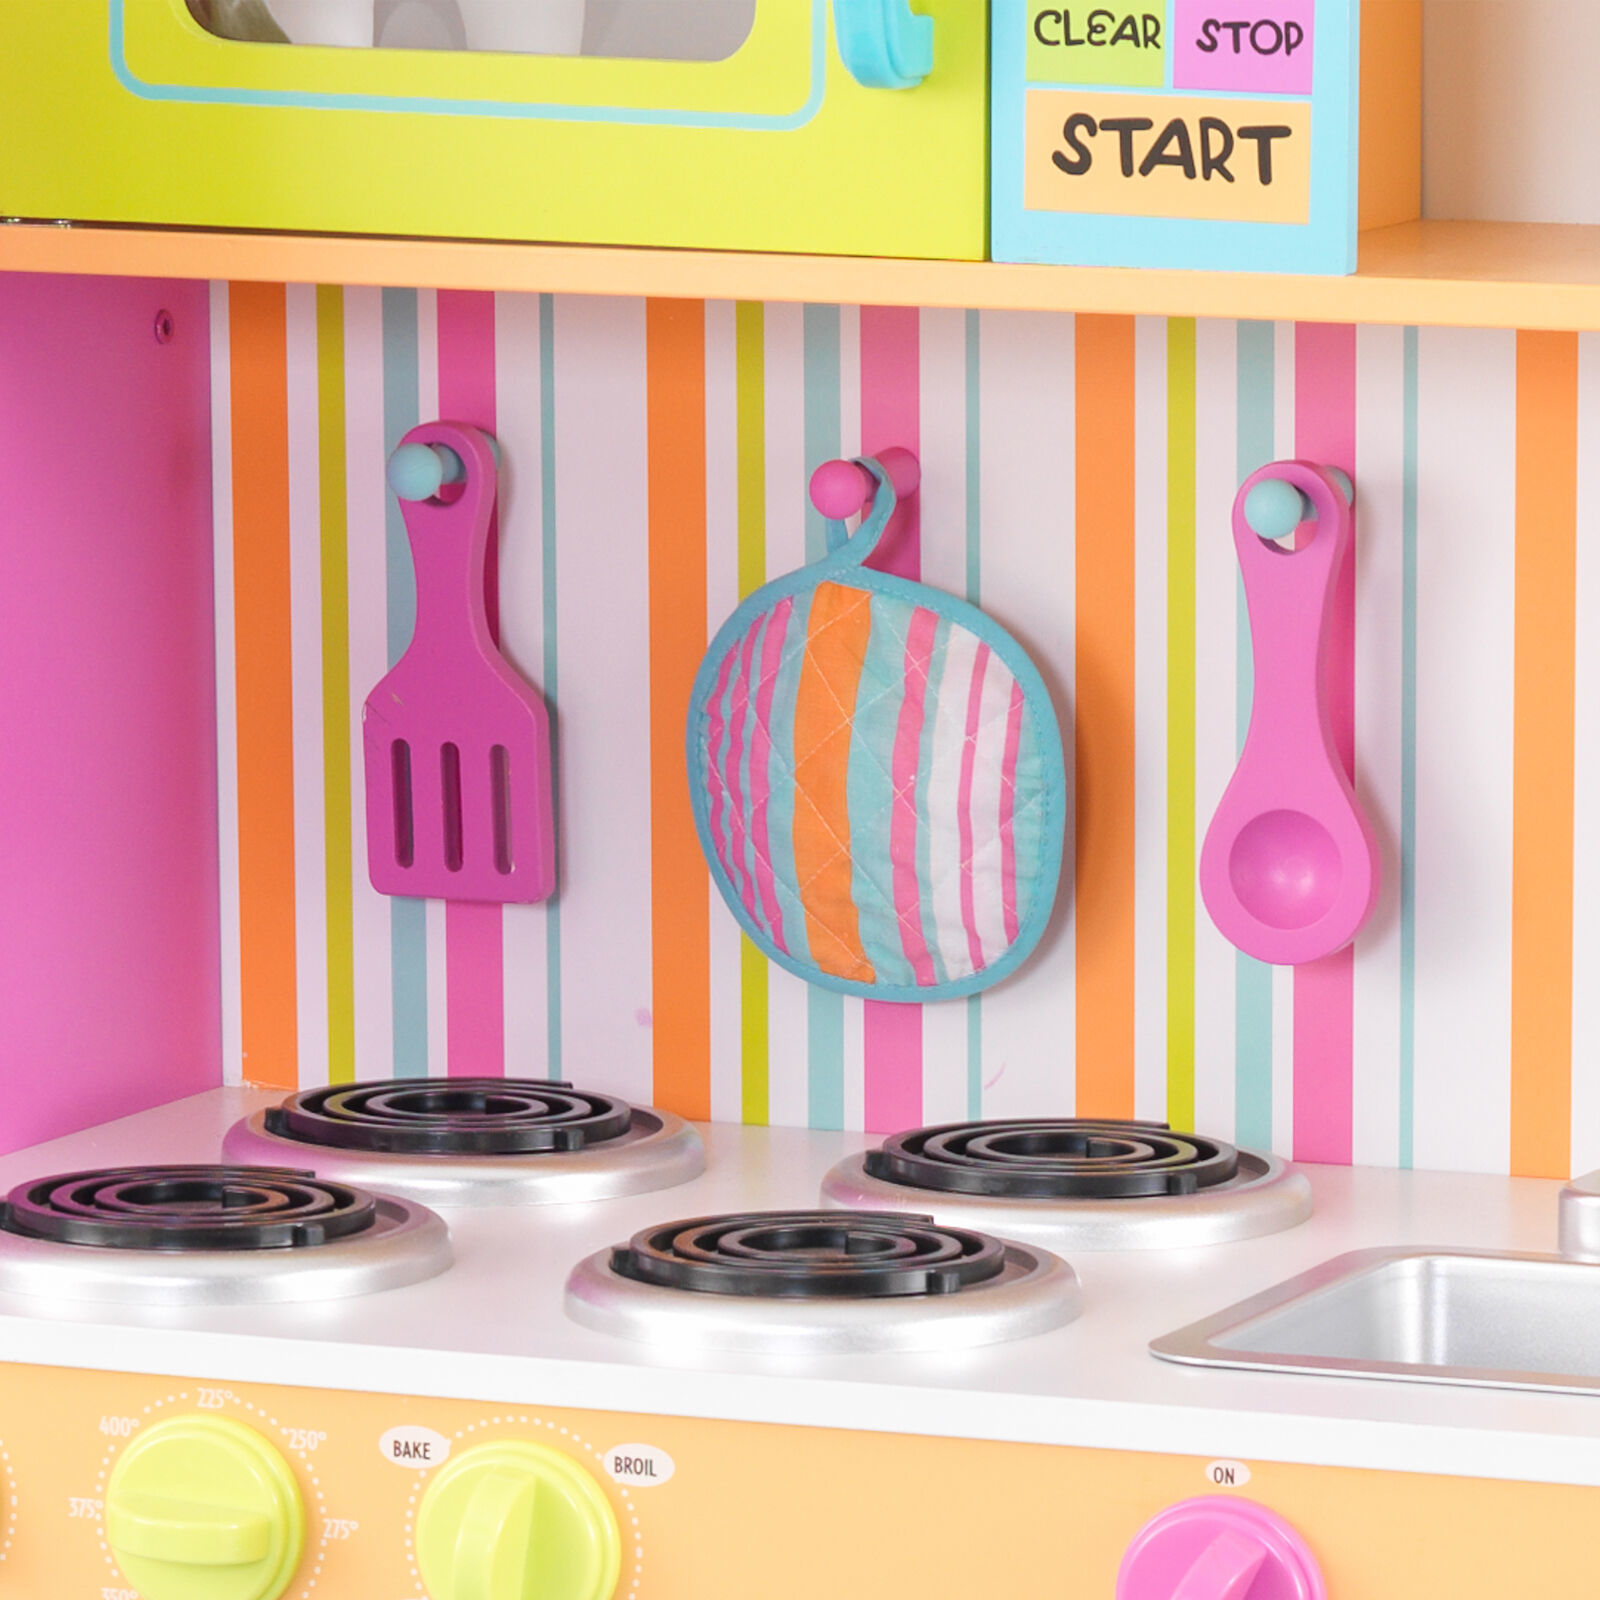 KidKraft Deluxe Big and Bright Kitchen and 50 similar items